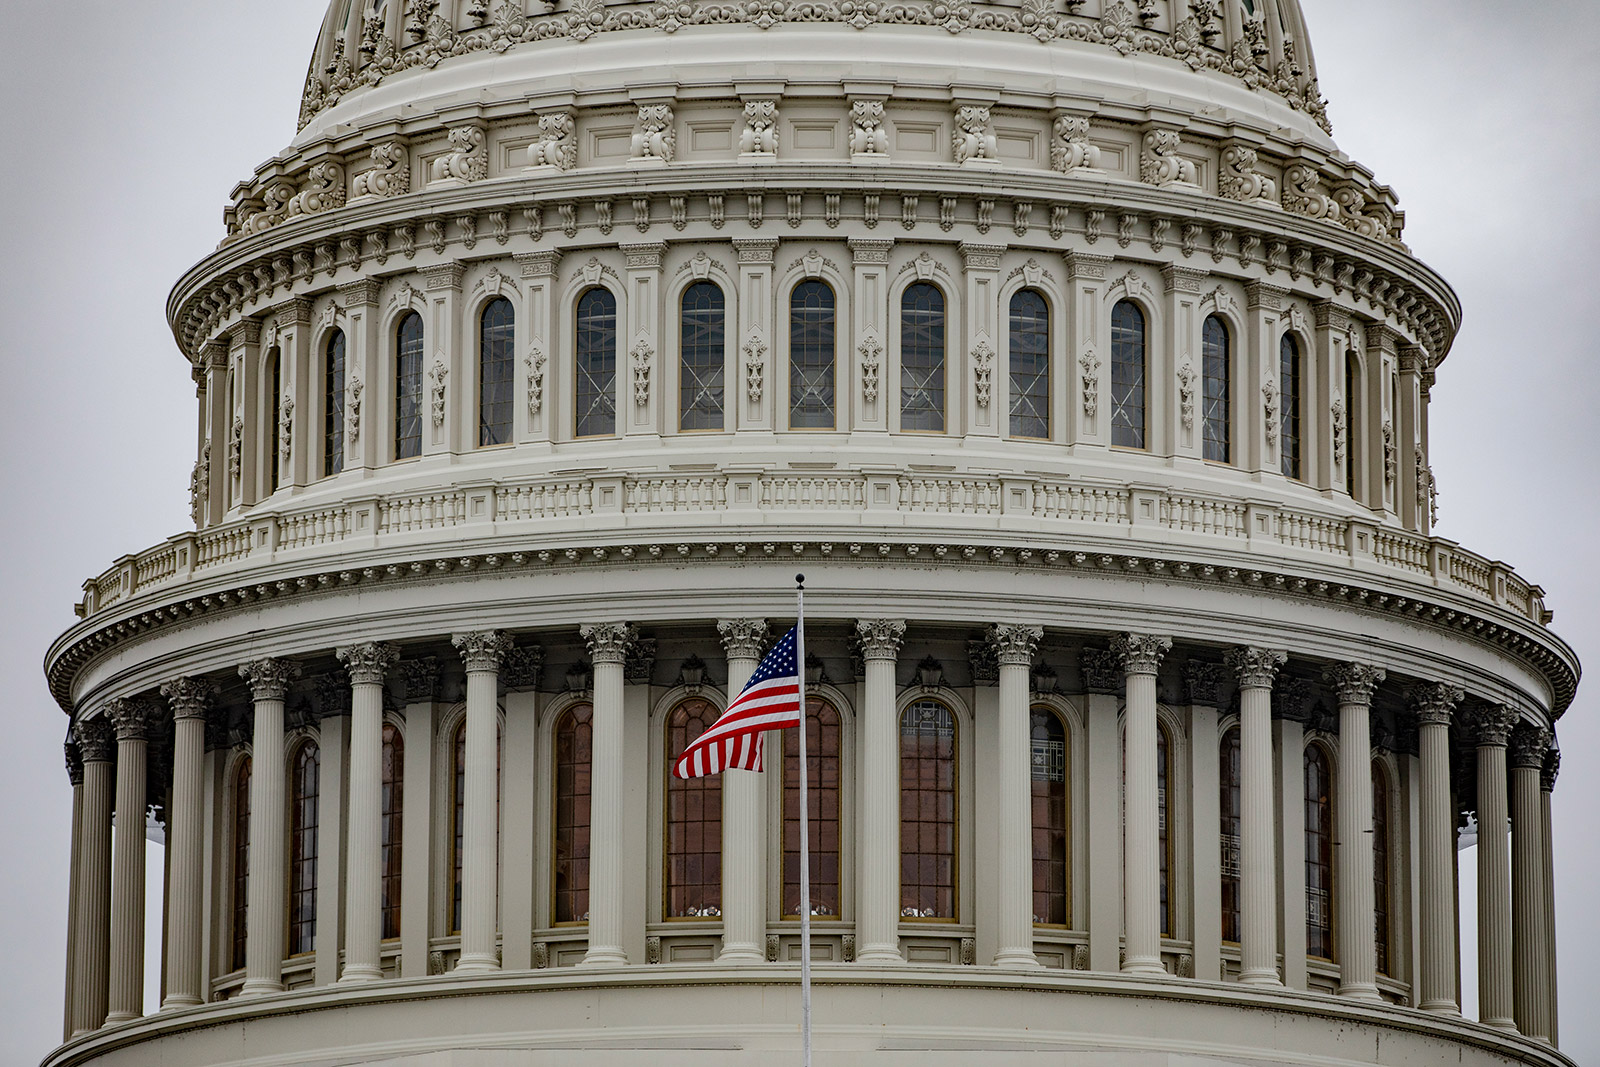 An American flag flies in front of the Capitol building in Washington, DC.